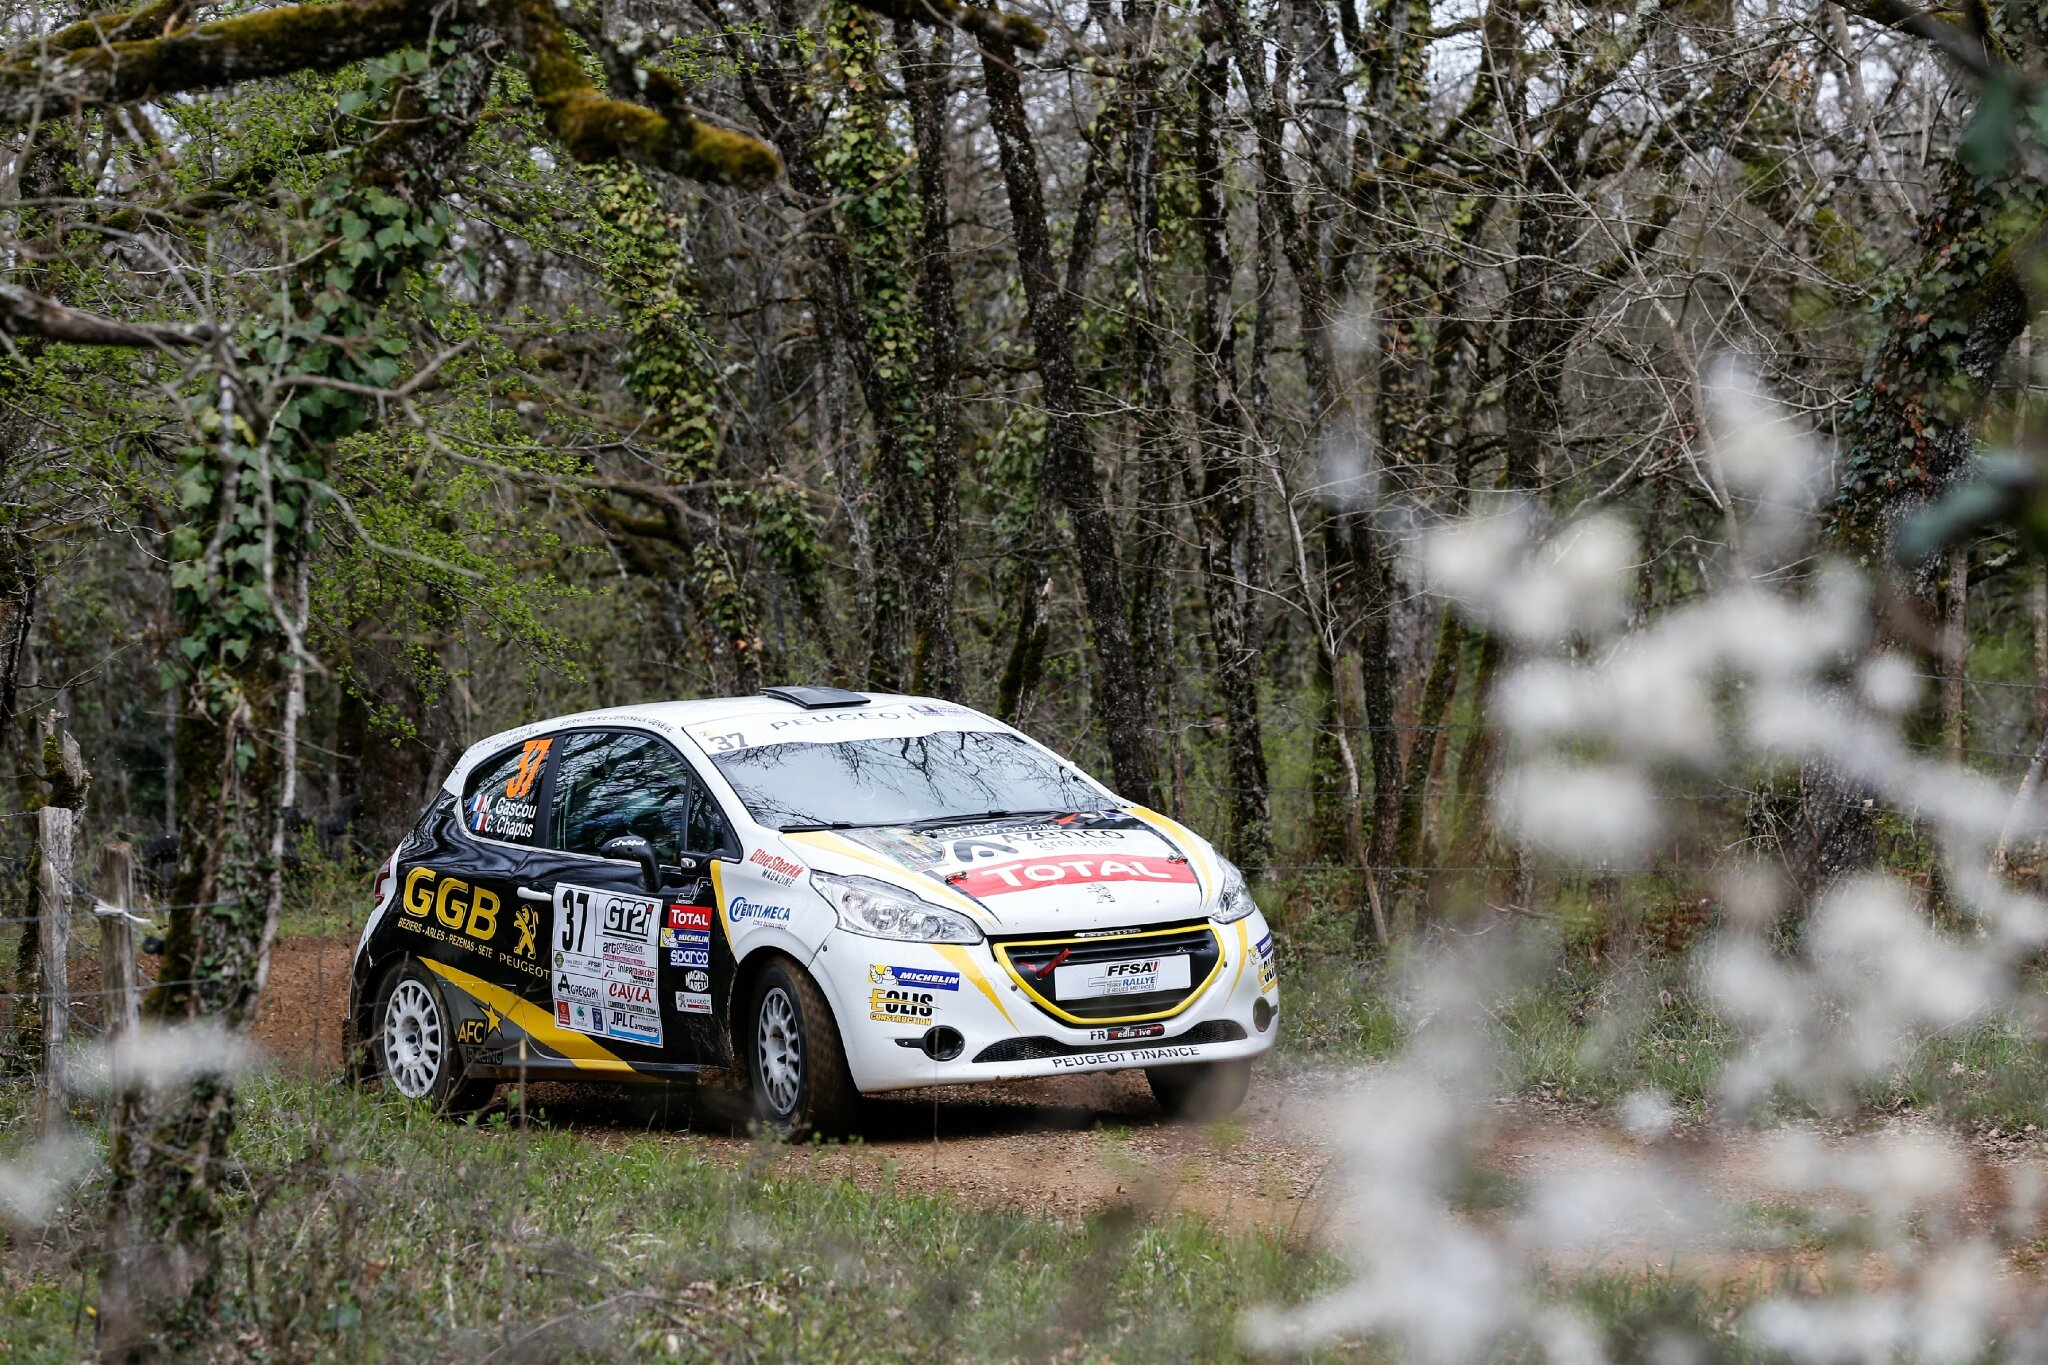 208 RALLY CUP : 4-5-6 avril 2015 / Rallye Terre des Causses (1/7)